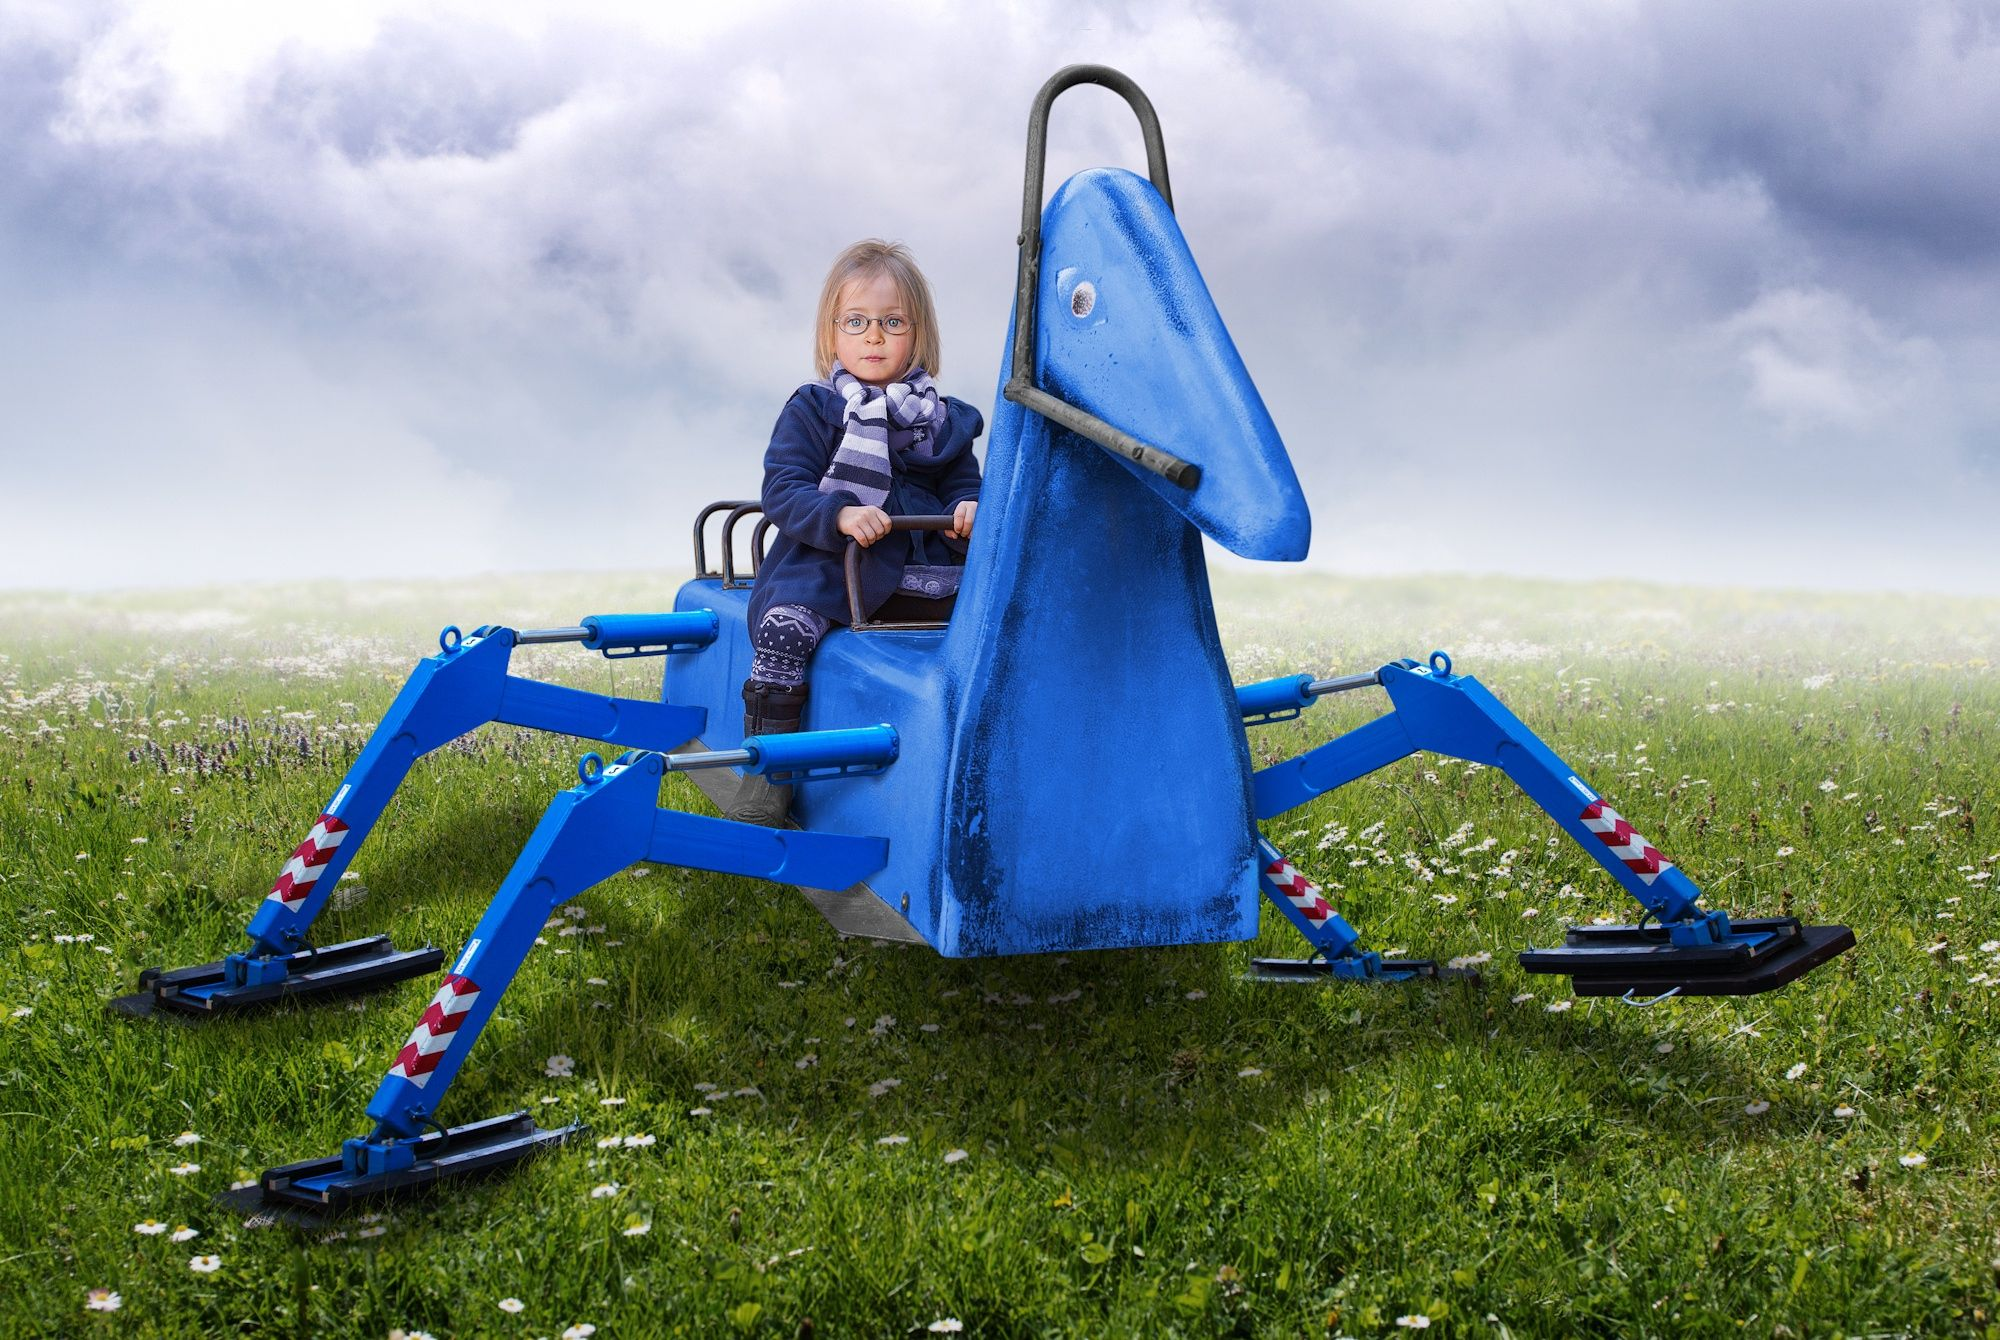 Her first Horse by John Wilhelm is a photoholic on 500px